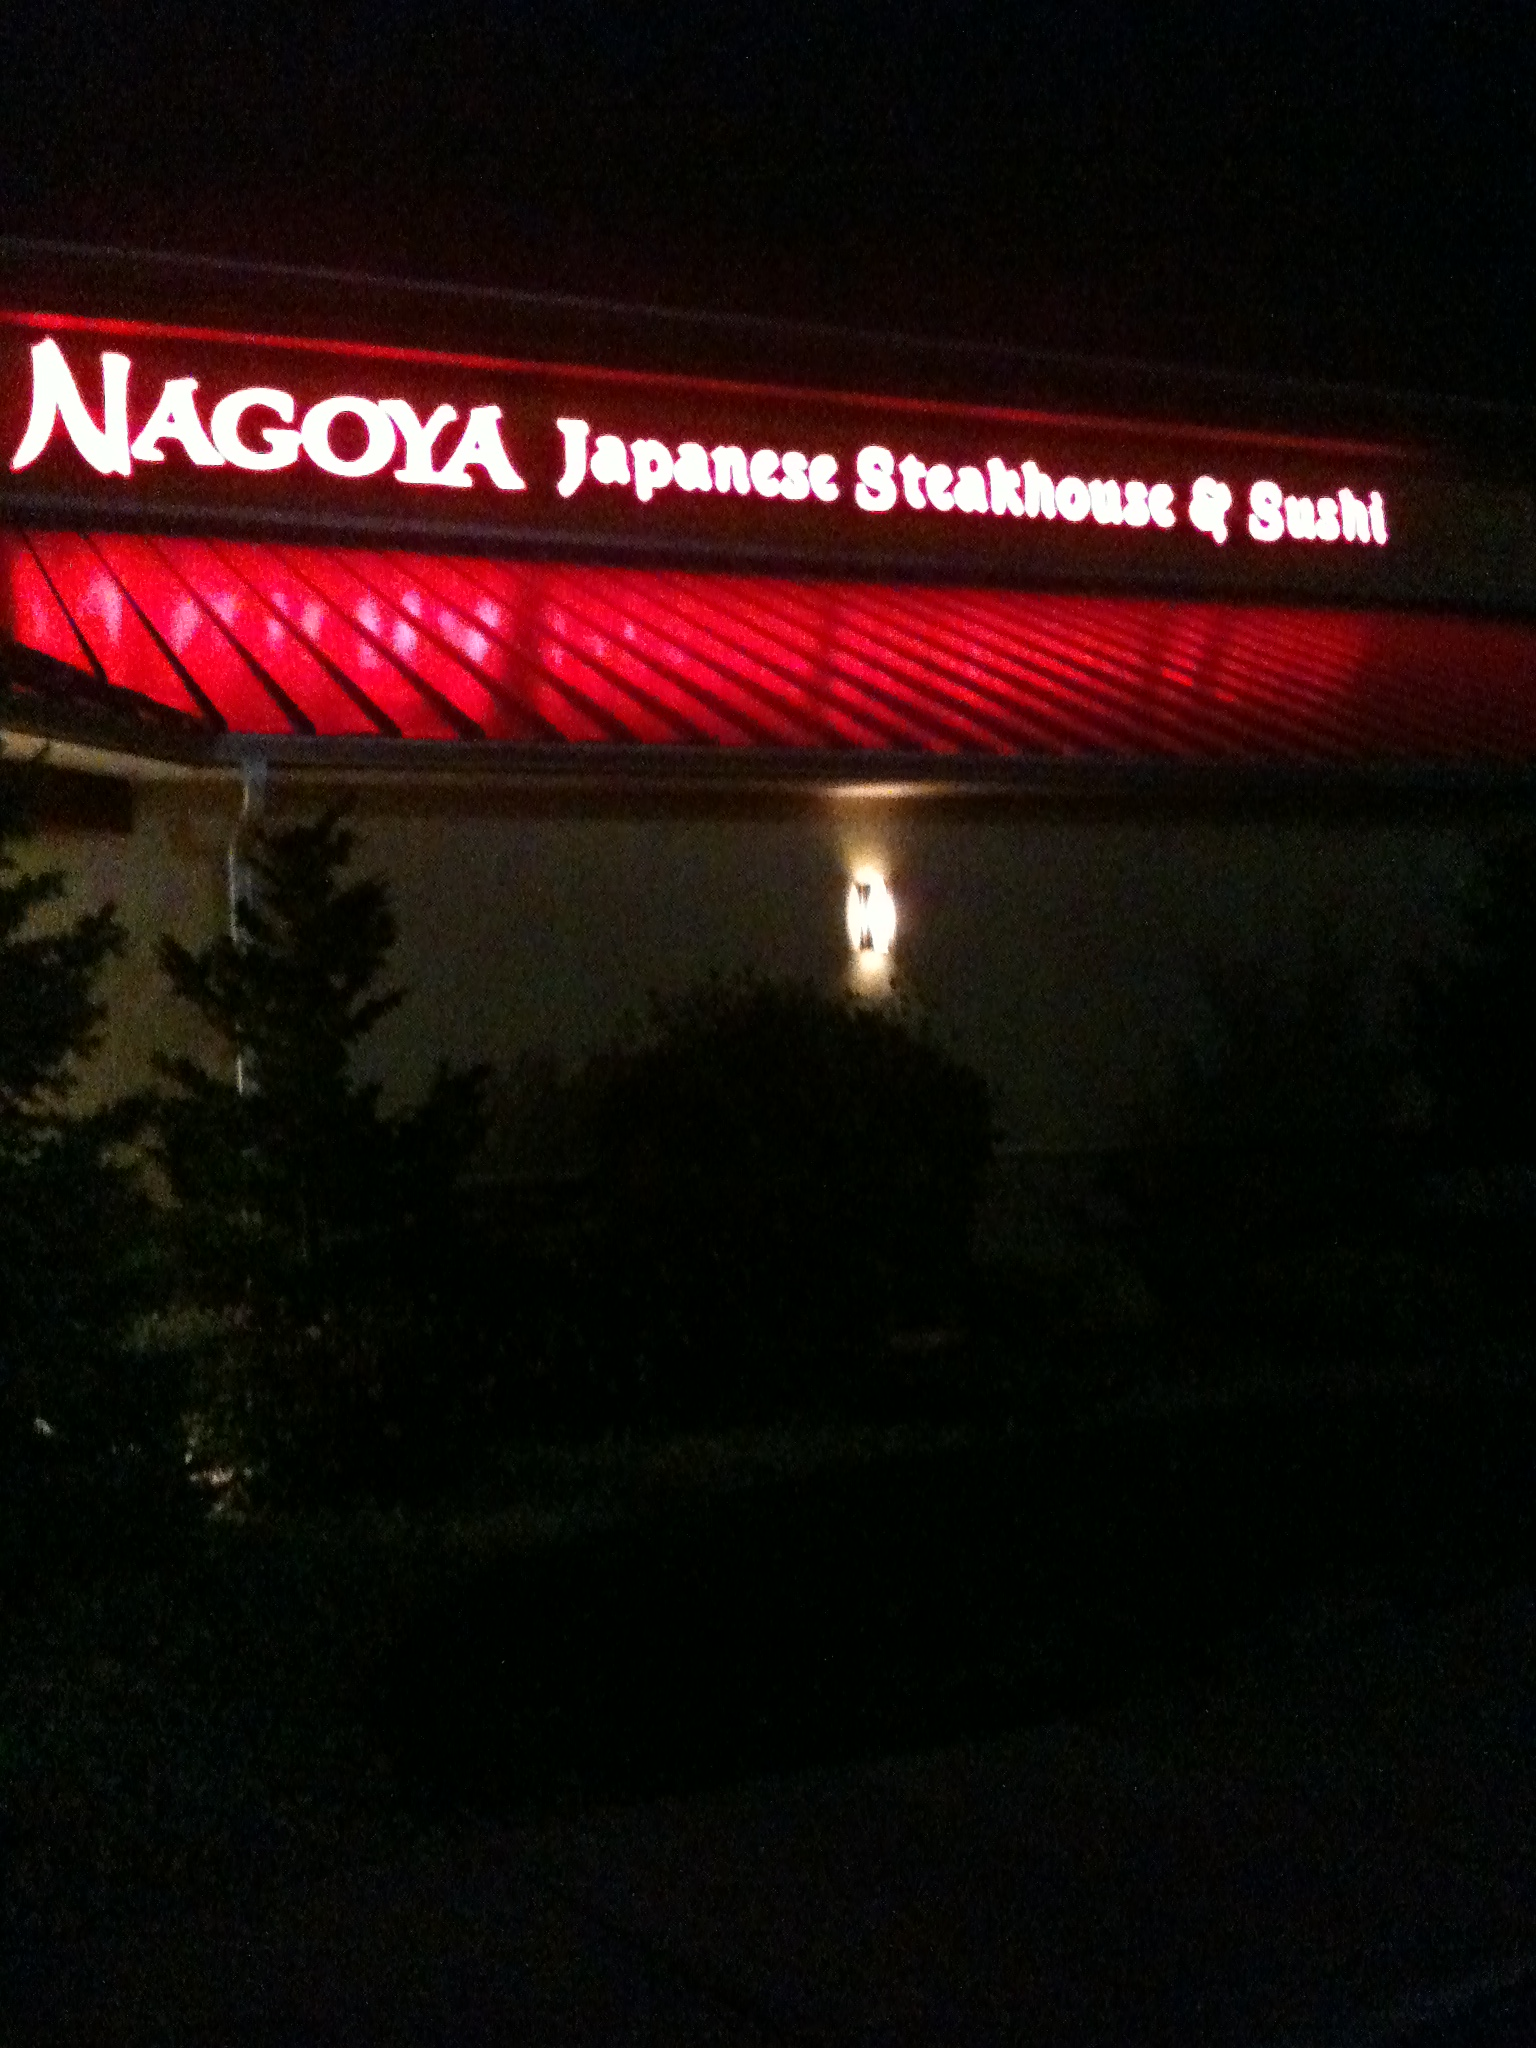 Nagoya Japanese Steakhouse &amp; Sushi